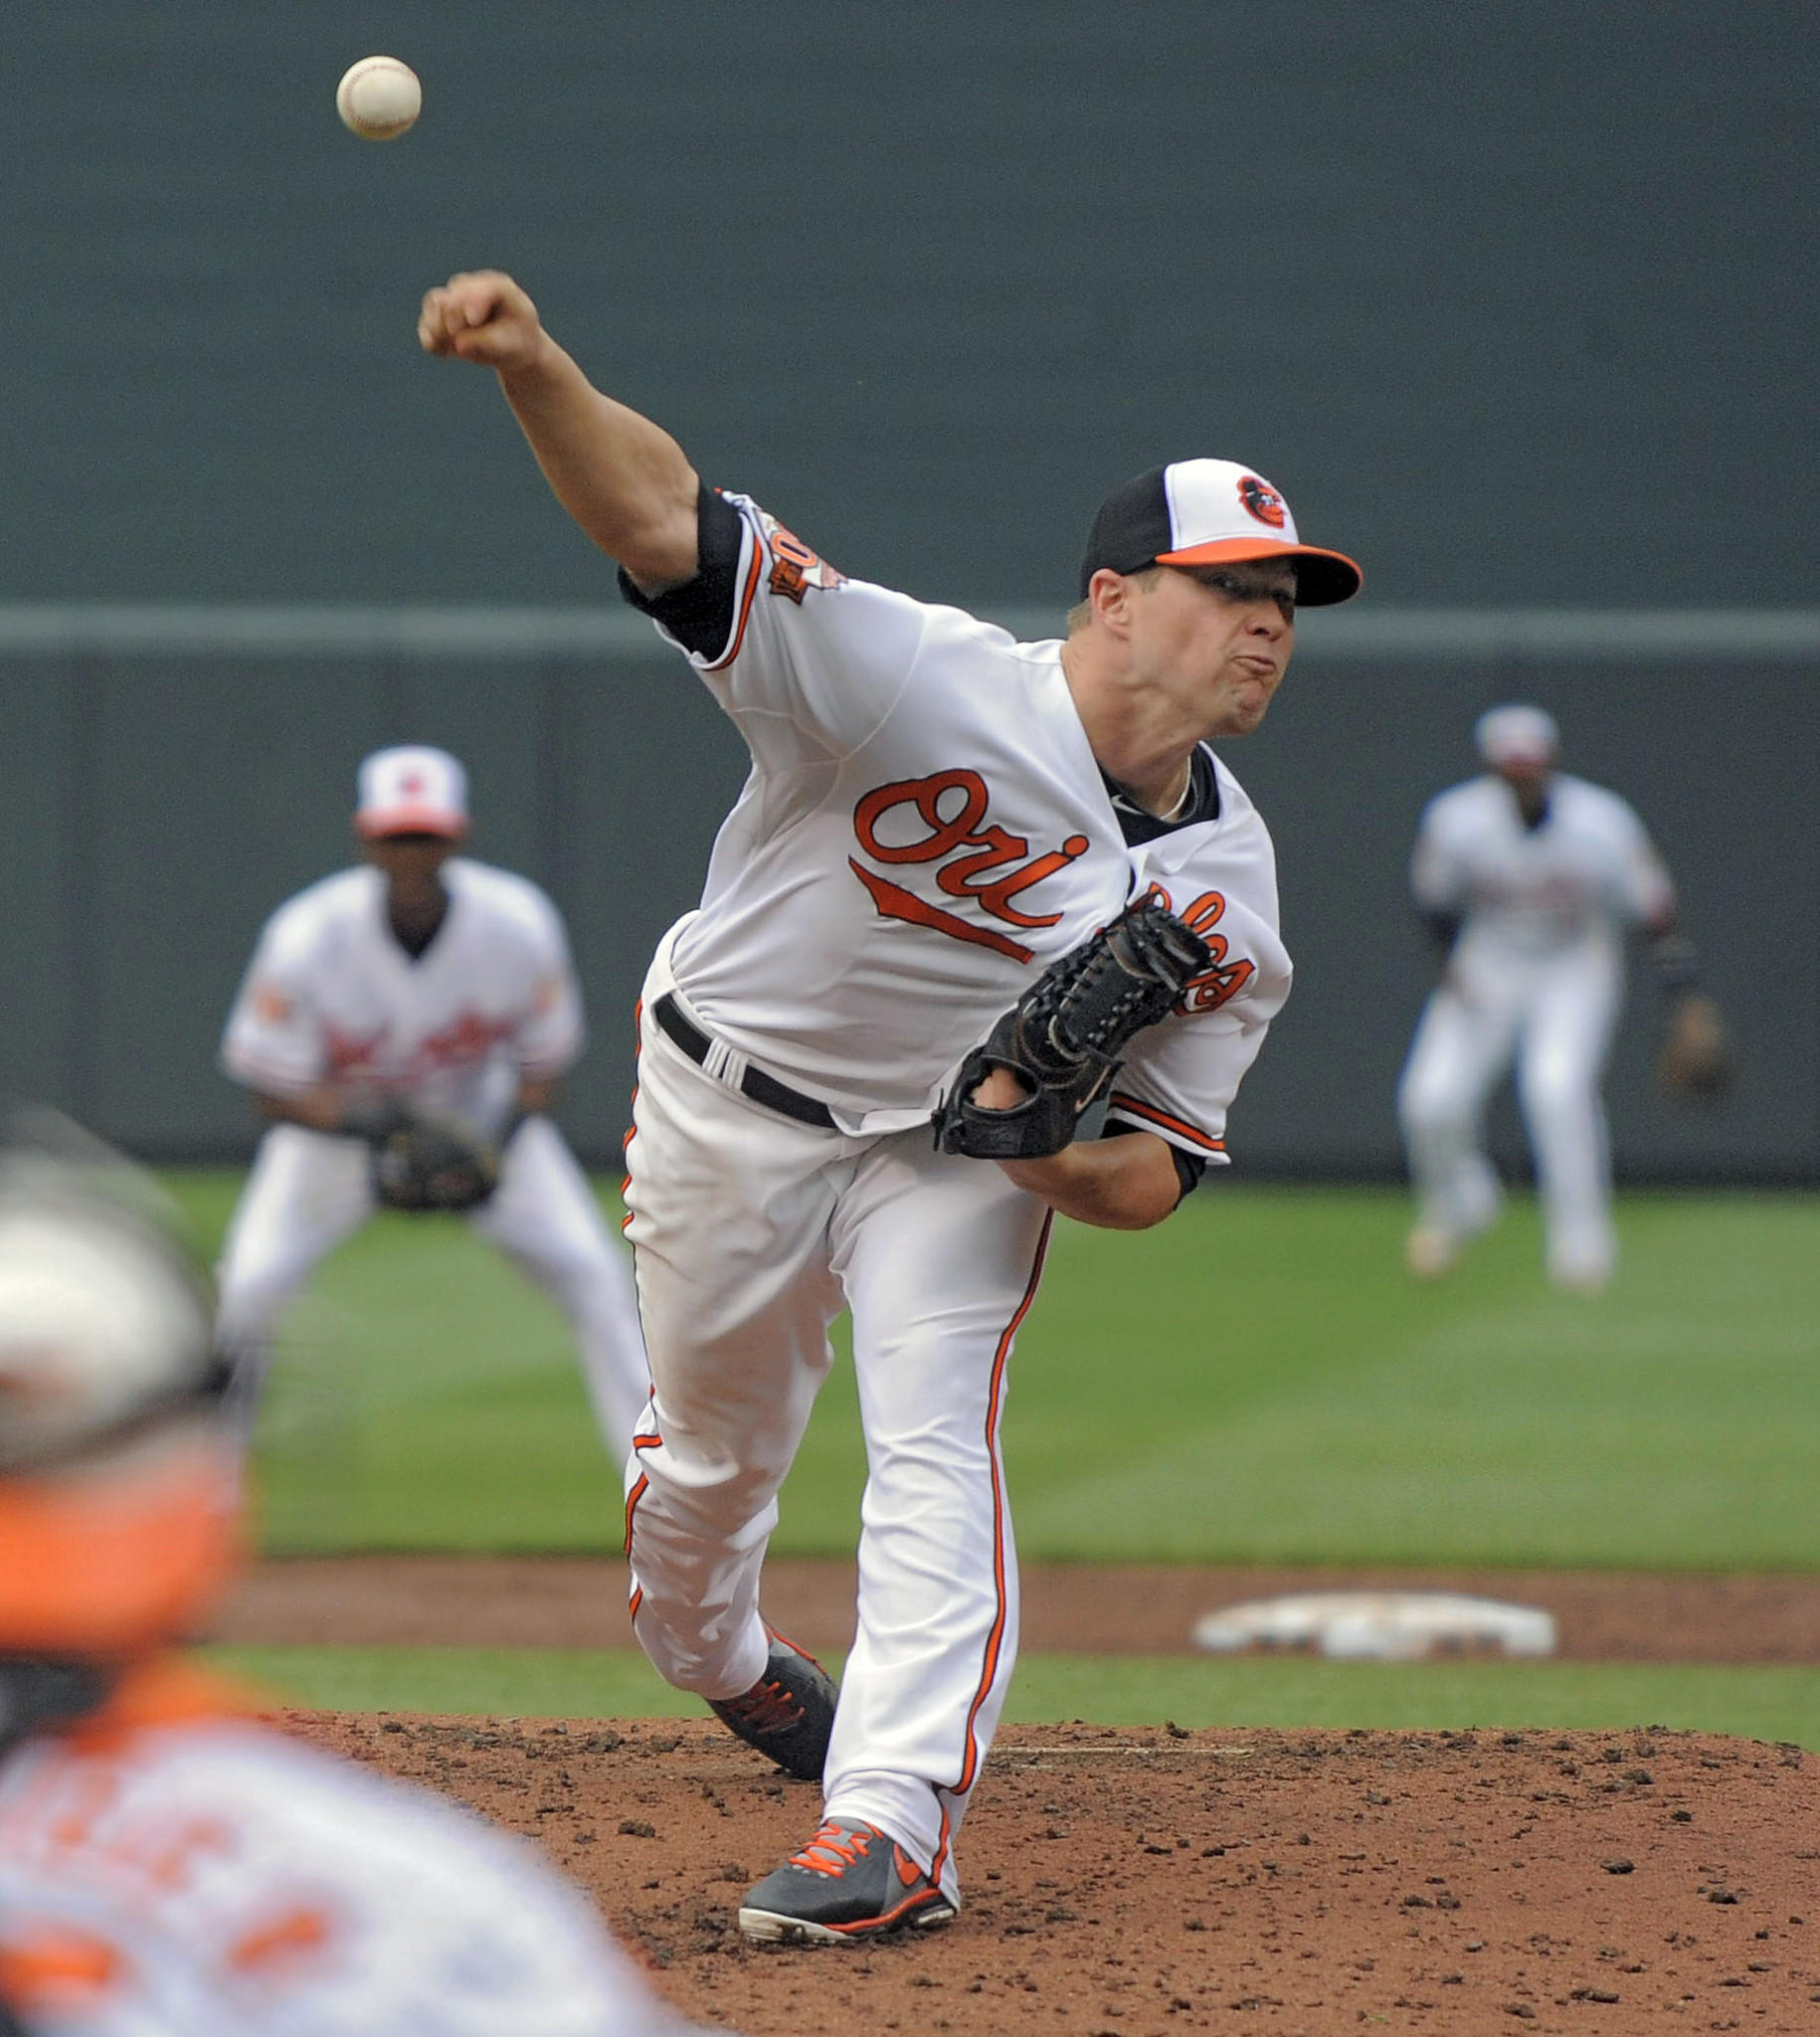 Orioles starting pitcher Bud Norris delivers against the Pittsburgh Pirates in game one of a double header between the ballclubs at Oriole Park at Camden Yards.